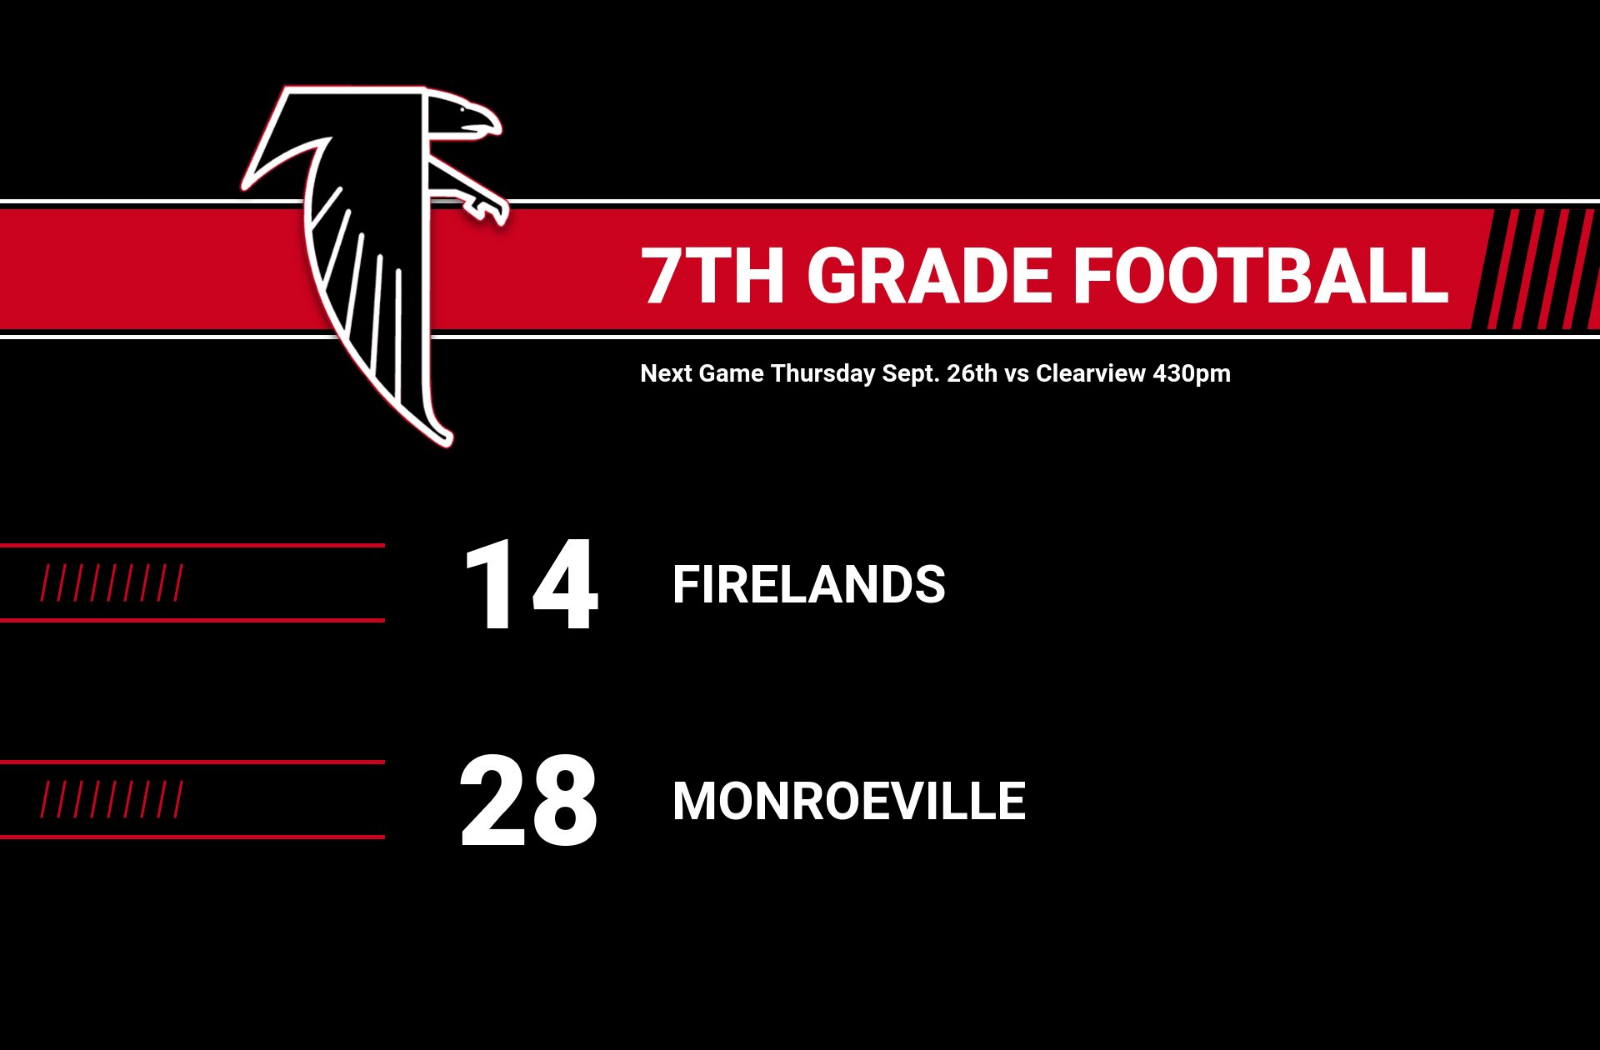 7th Grade Football continues to grow